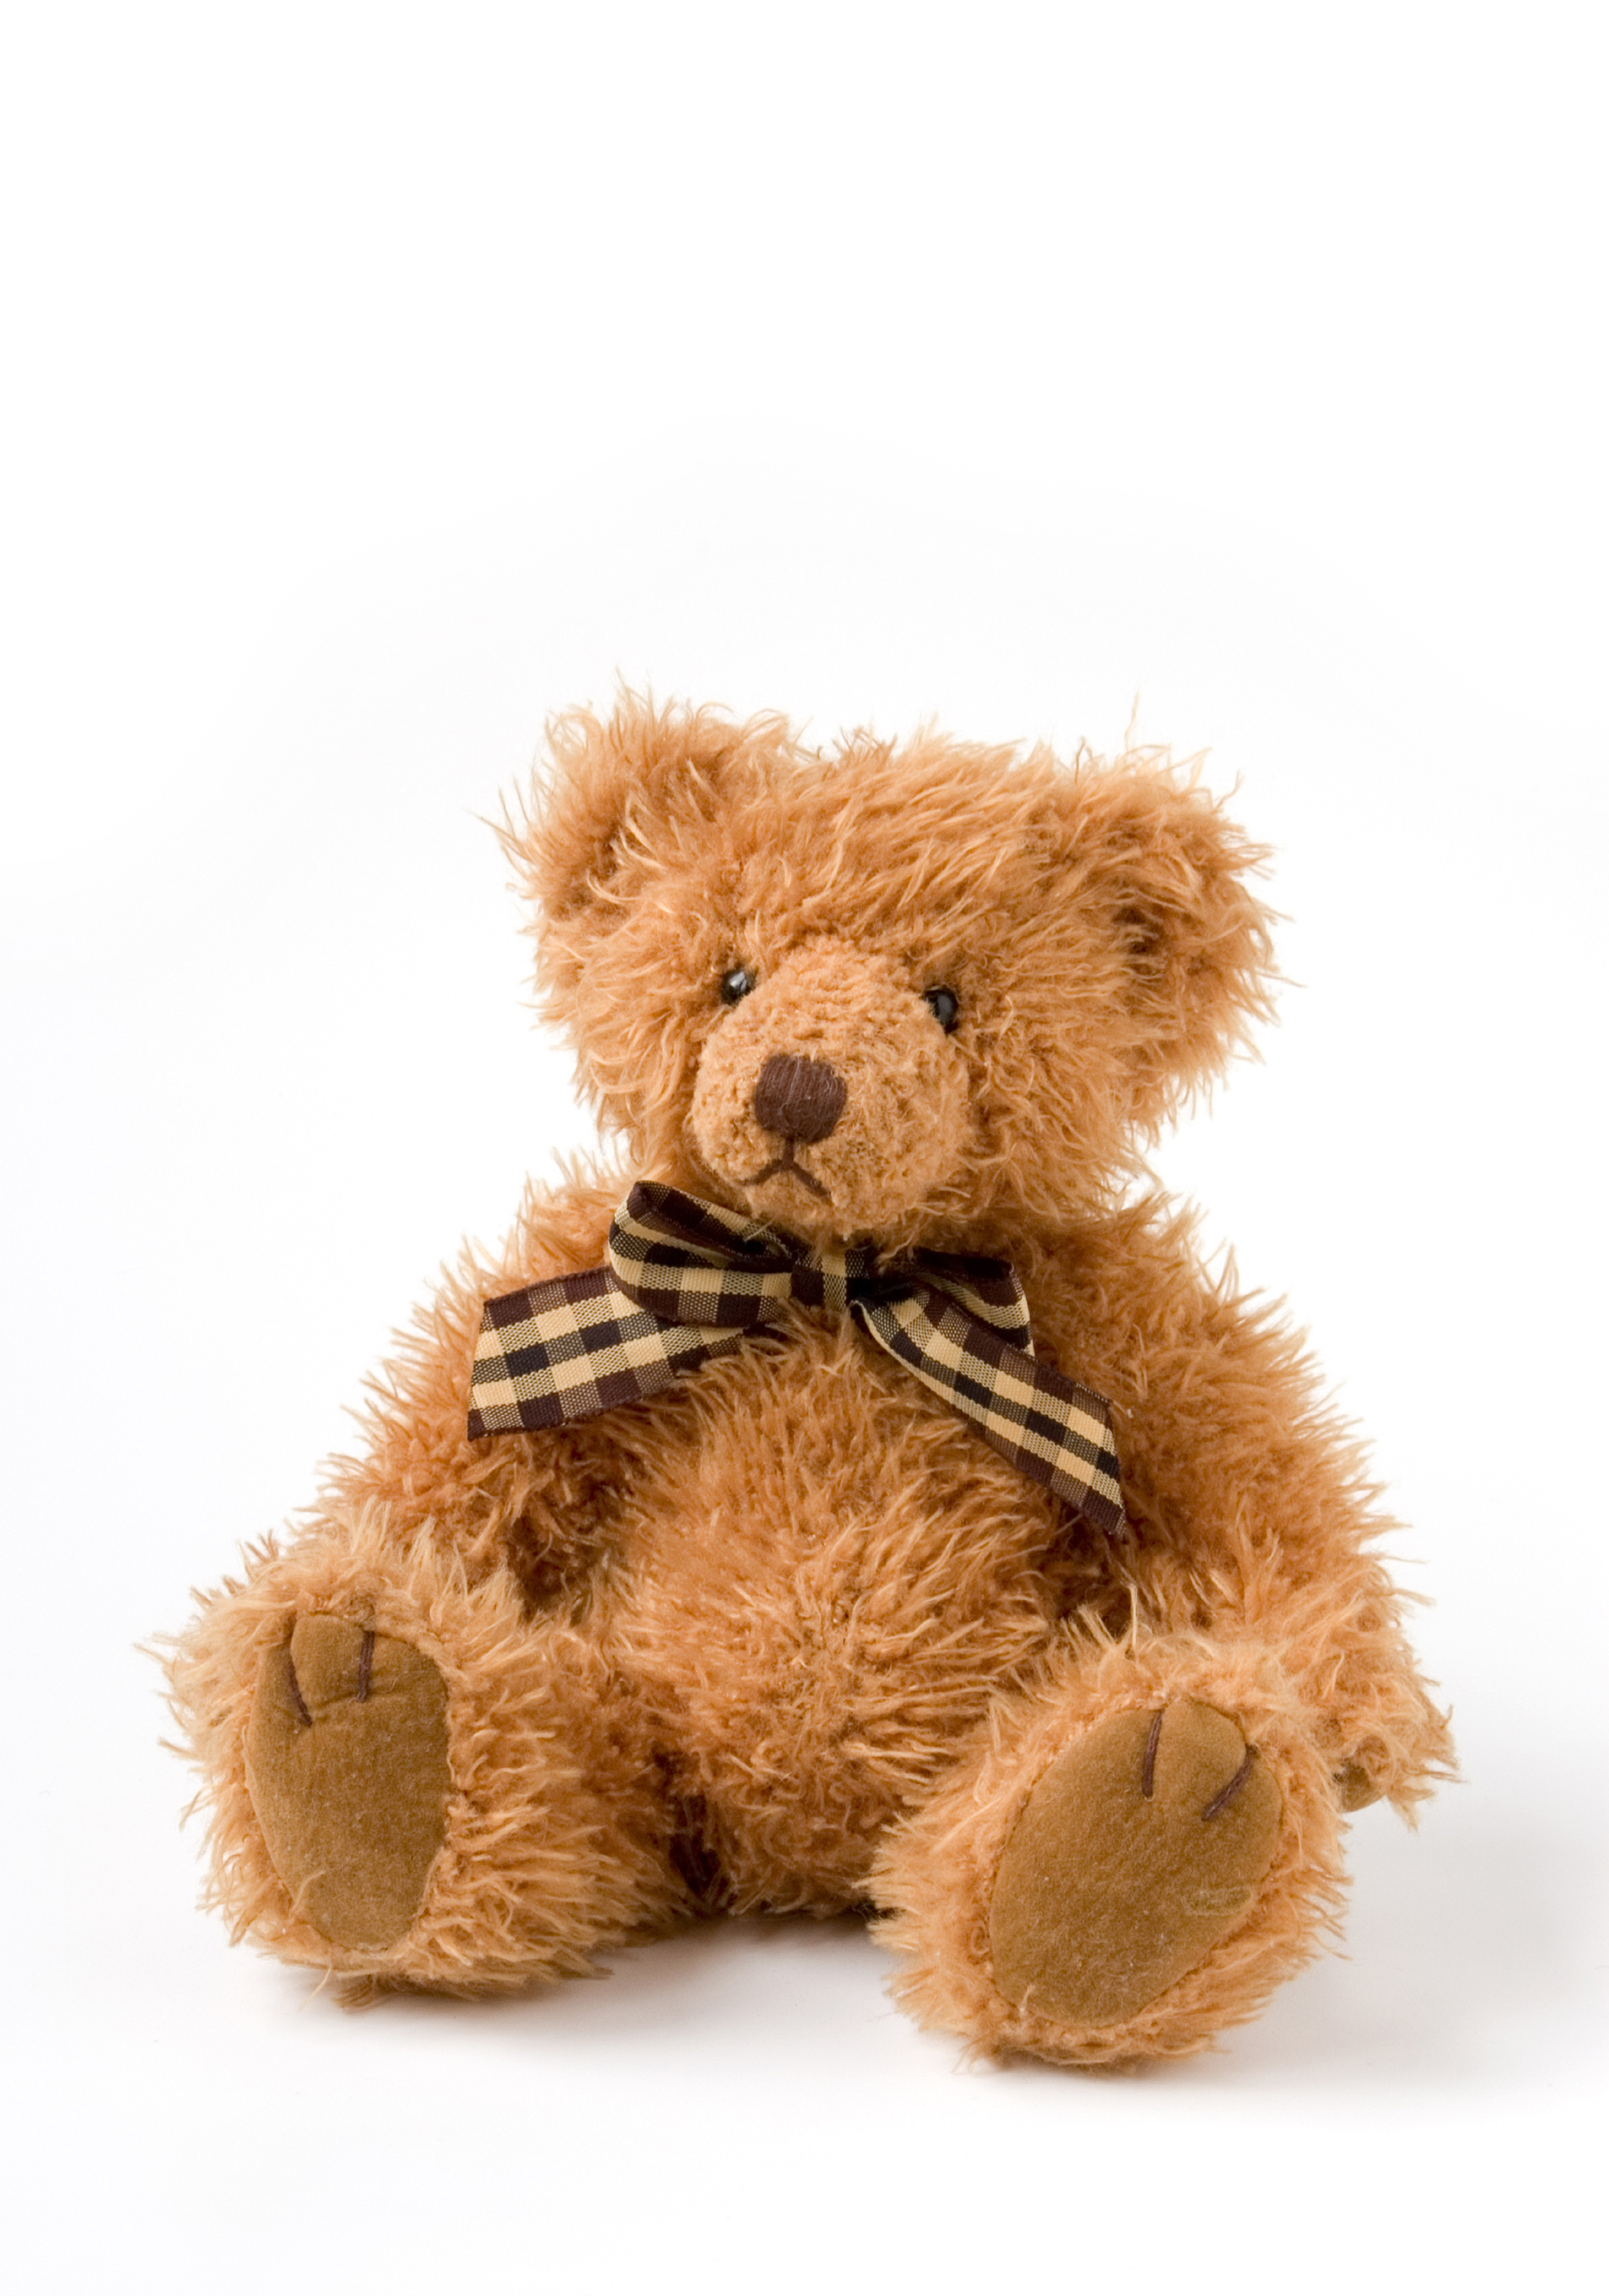 Teddy bear 52554